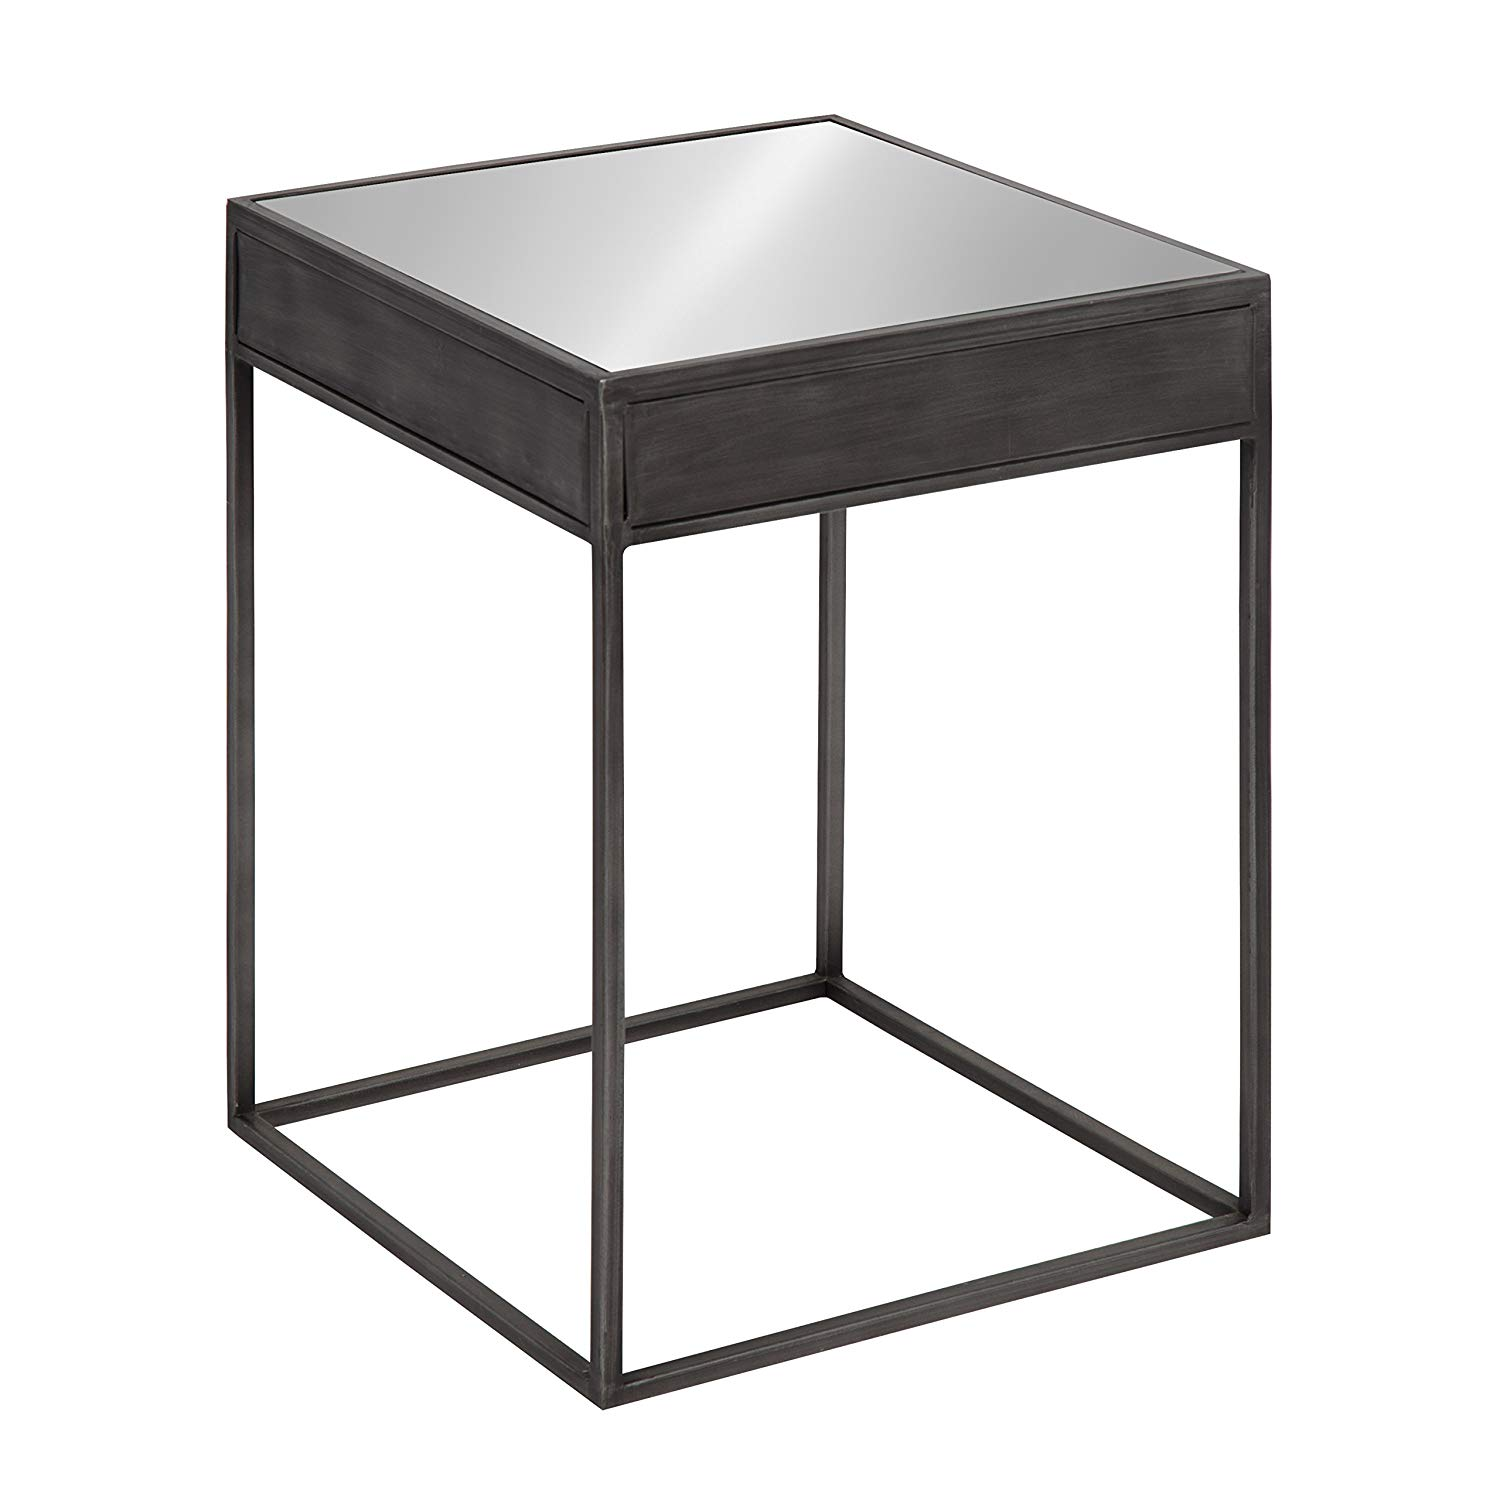 small metal accent table find gray get quotations kate and laurel aleksand industrial modern square mirror side end metallic nesting tables ikea circle coffee round patio cover